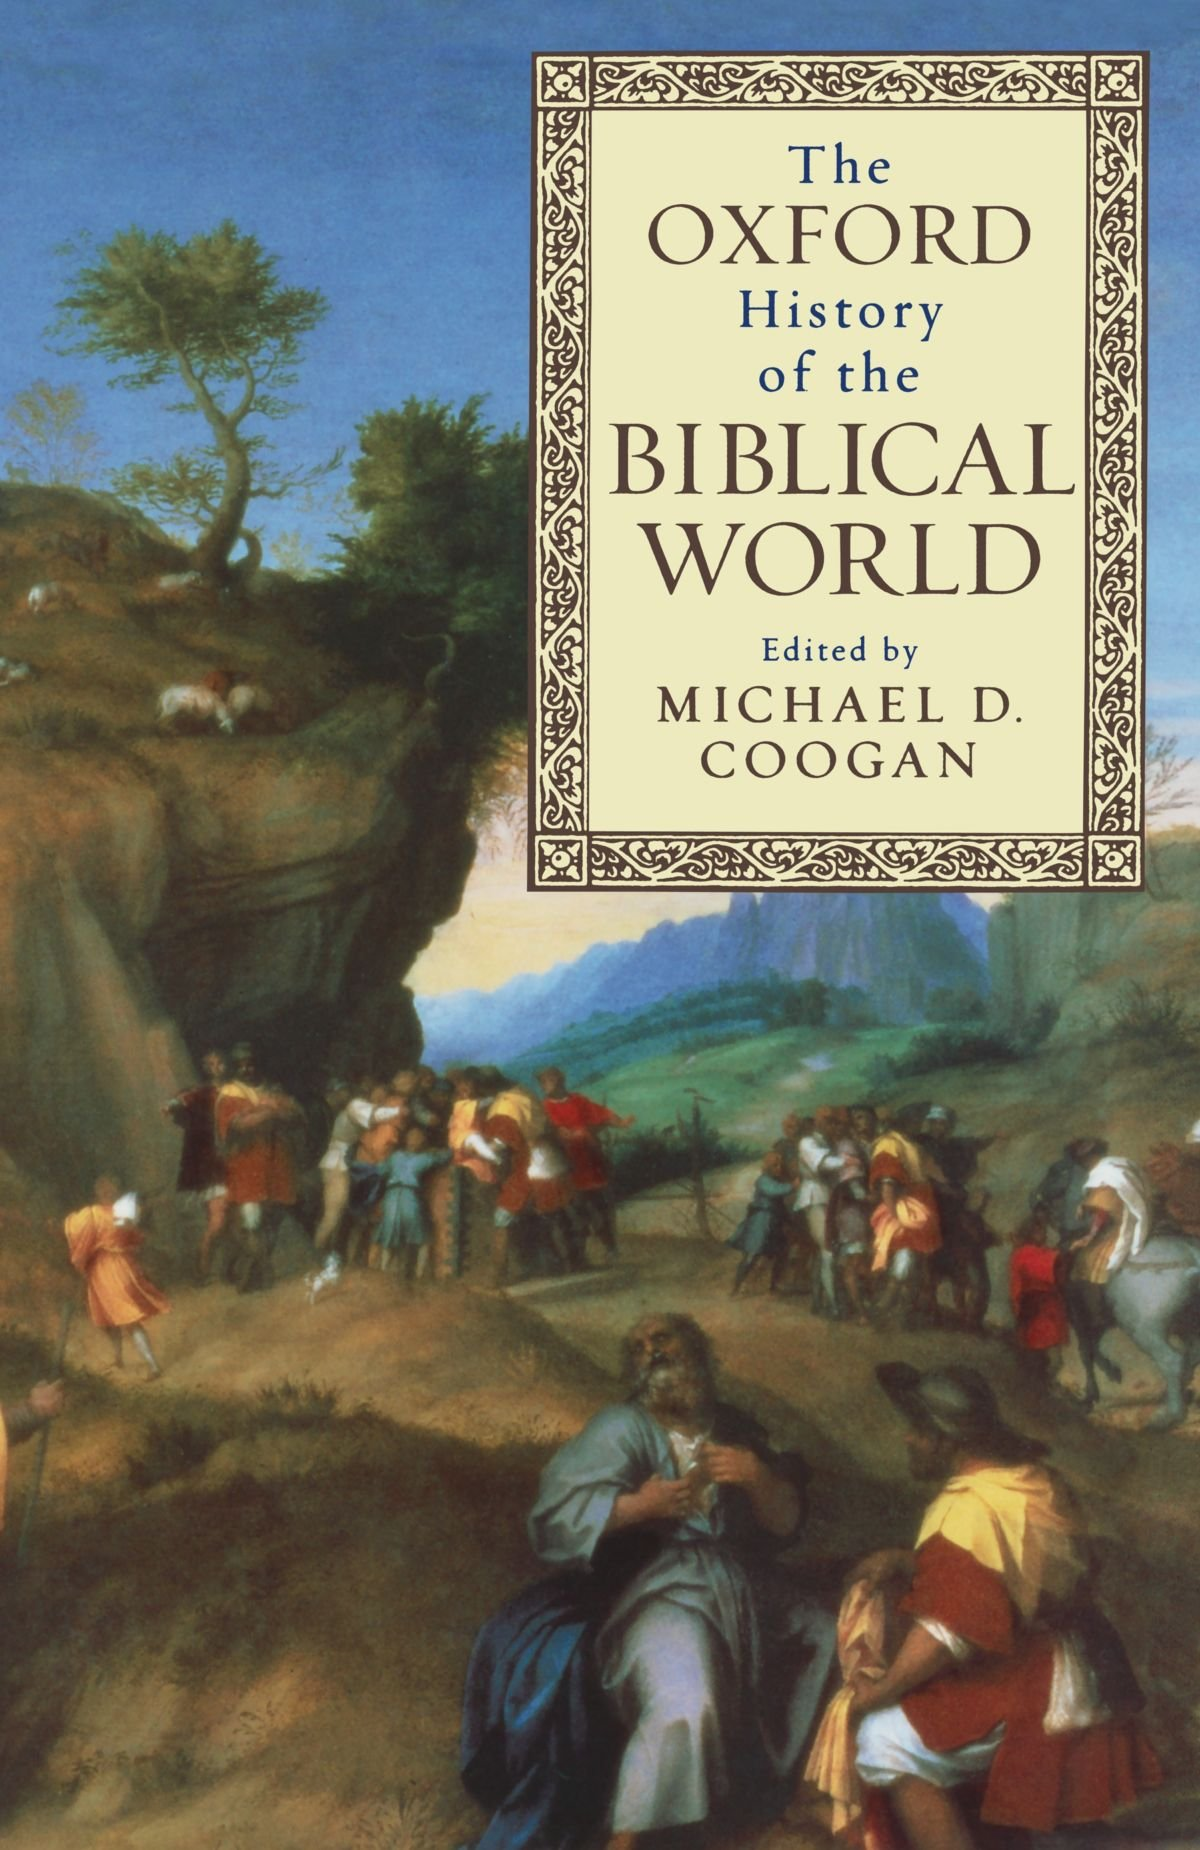 The Oxford History of the Biblical World: Michael D. Coogan: 9780195139372:  Amazon.com: Books